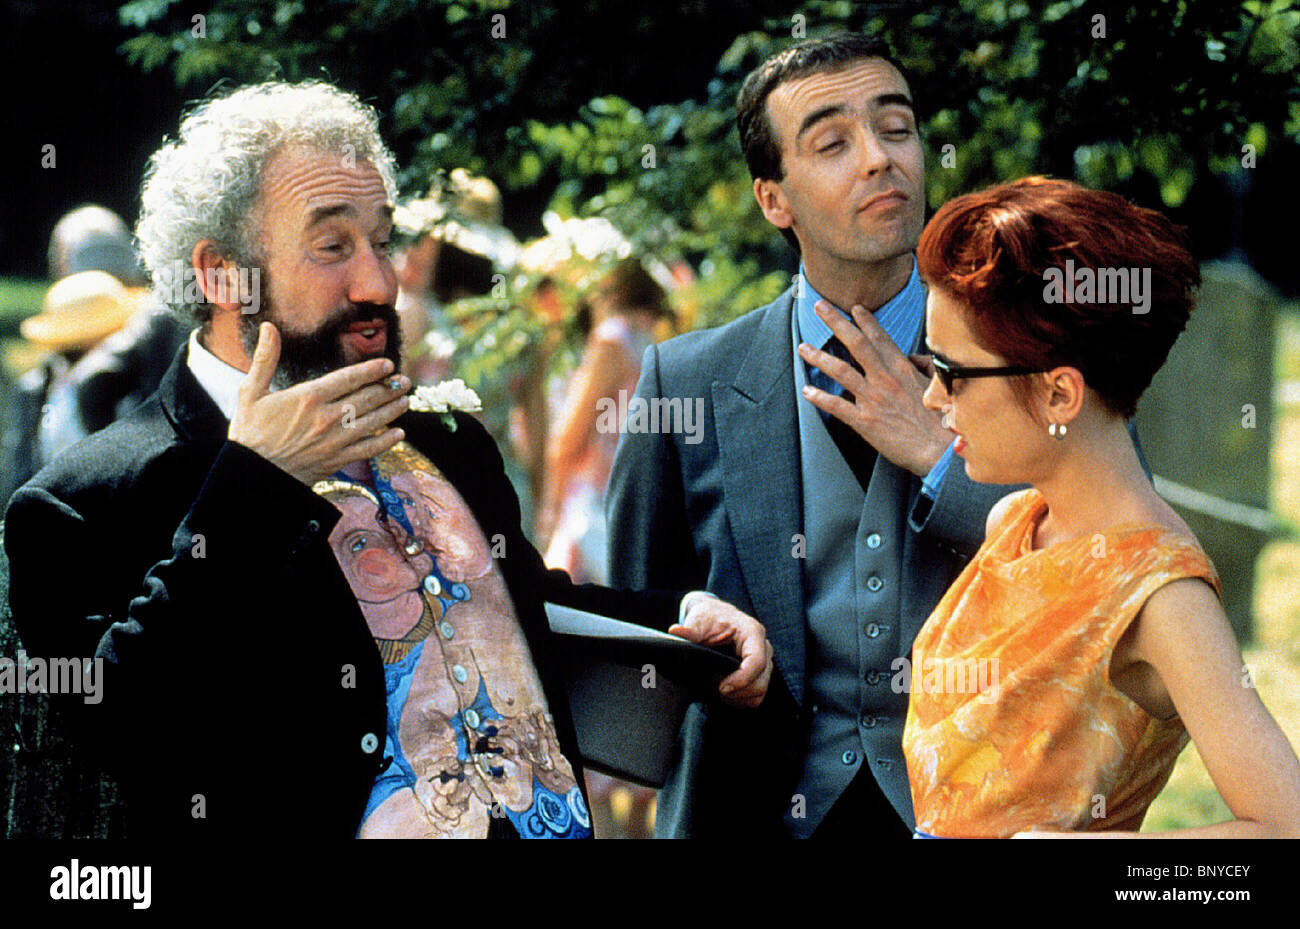 Four Weddings And A Funeral Gallery: Simon Callow Four Weddings Stock Photos & Simon Callow